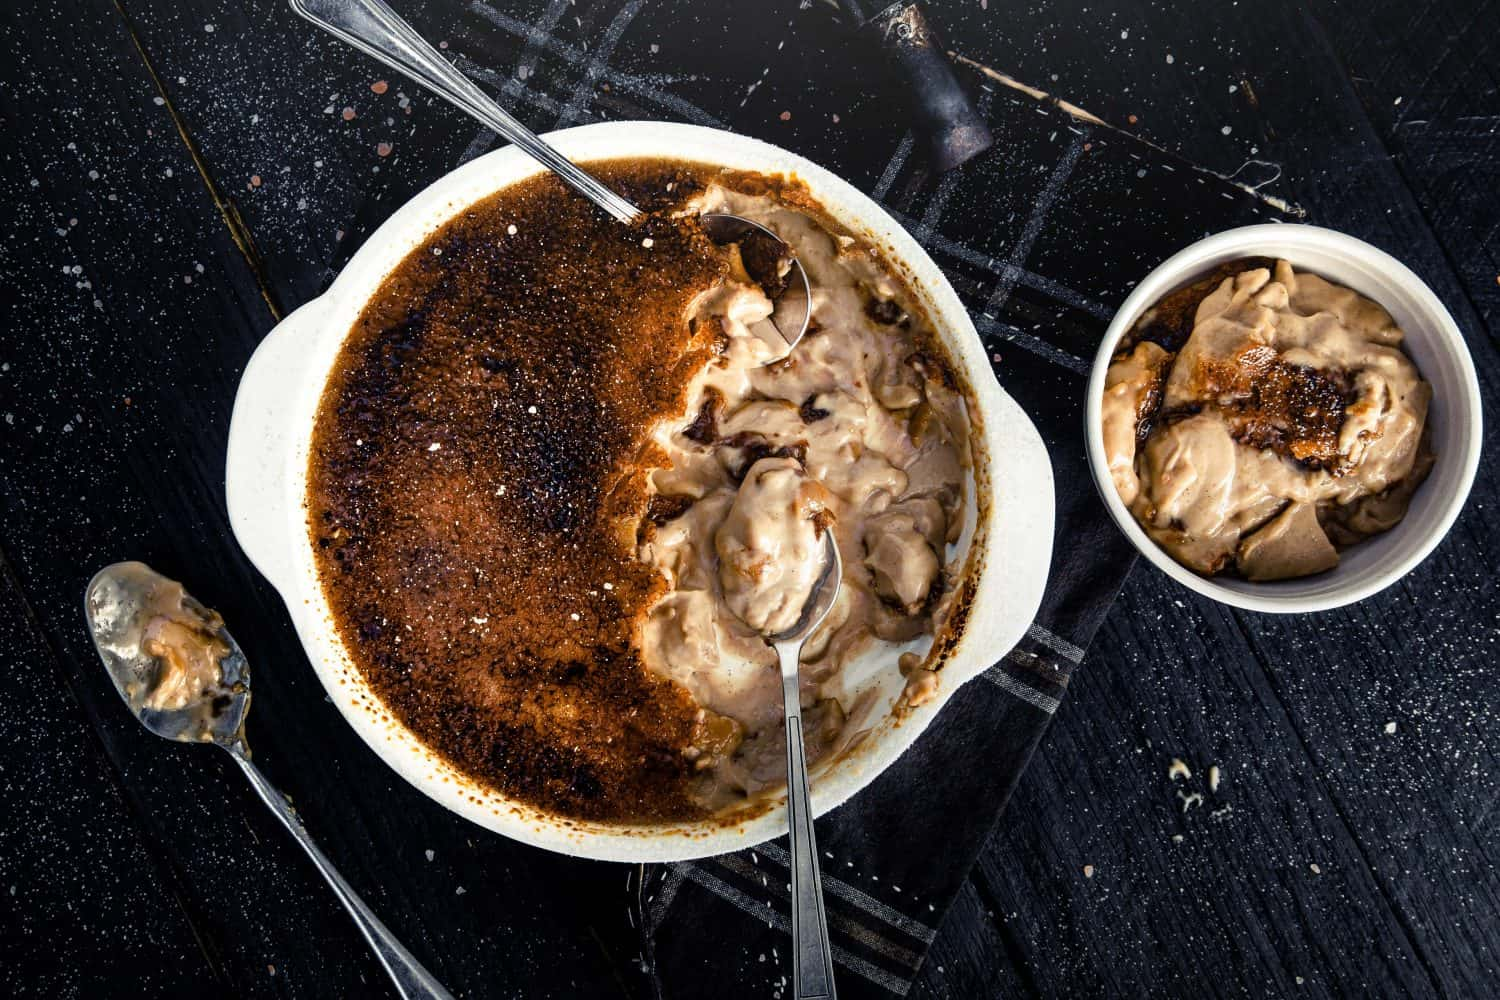 photograph of a half eaten chai creme brulee